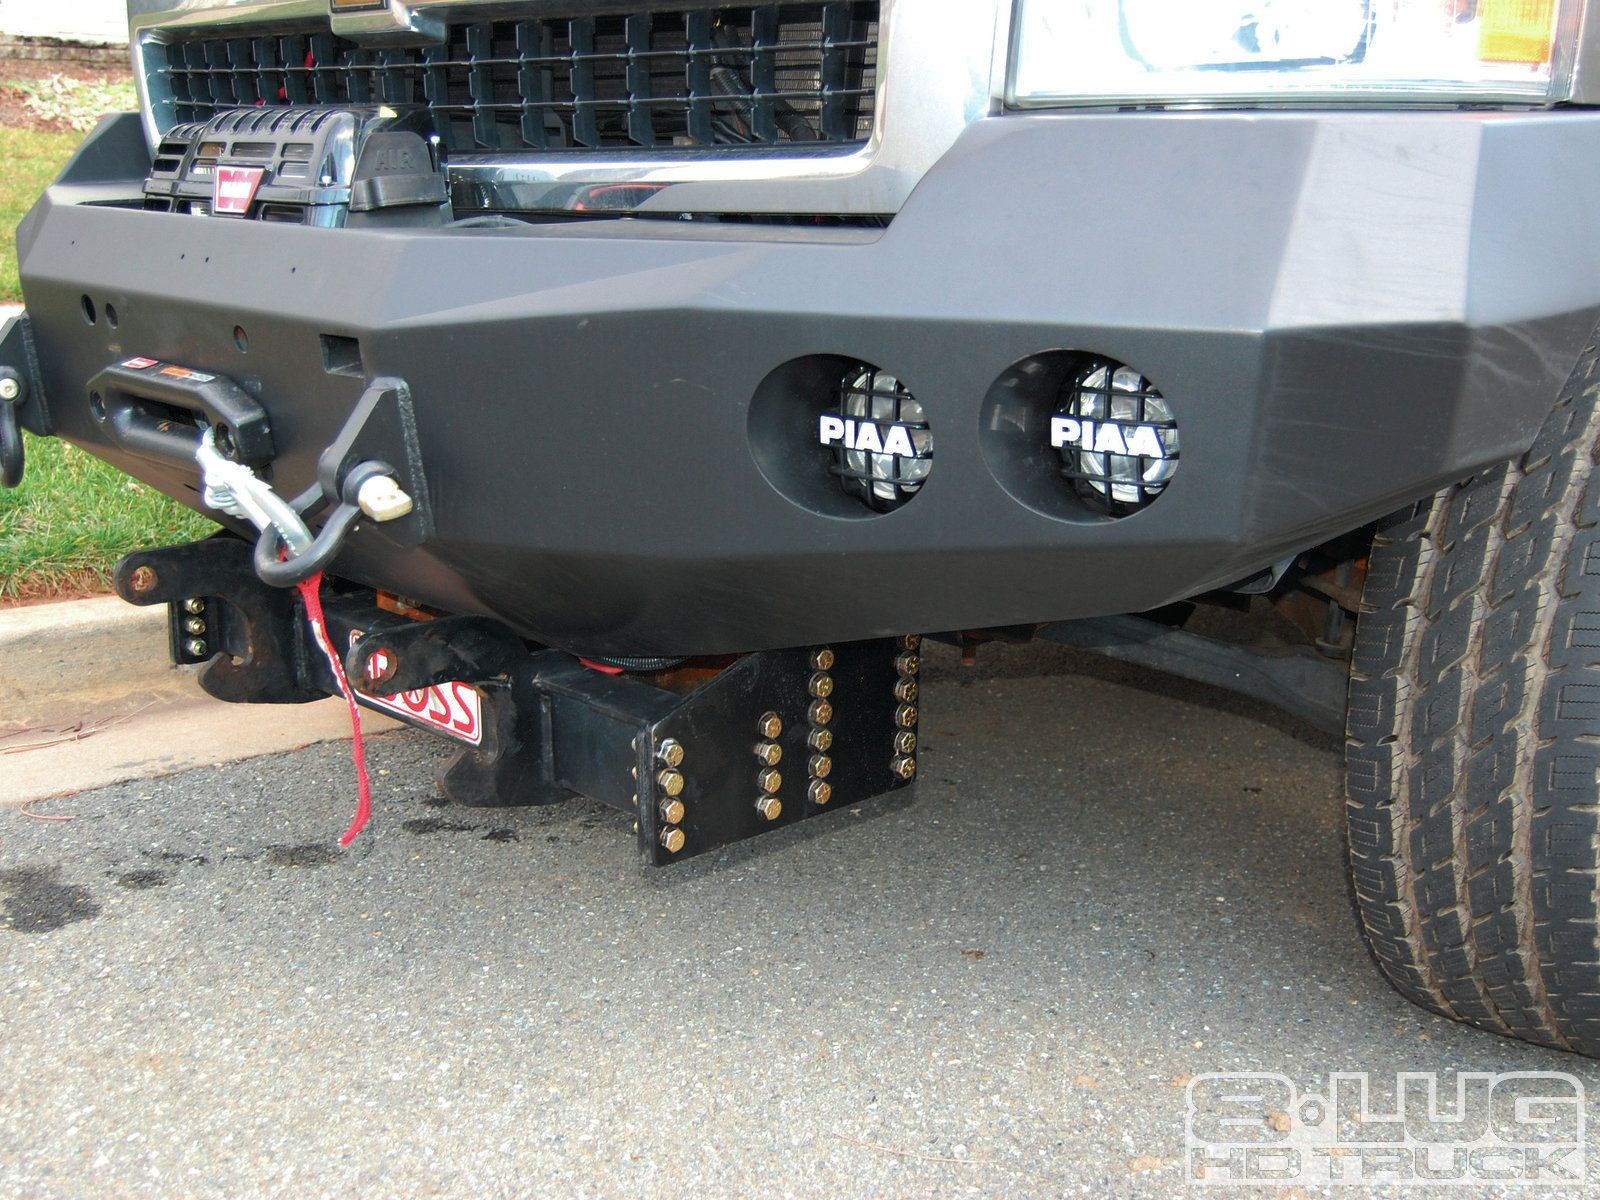 1210-8l-42+winch-time-ultimate-tow-and-work-truck-upgrades+grade-8-bolts.jpg